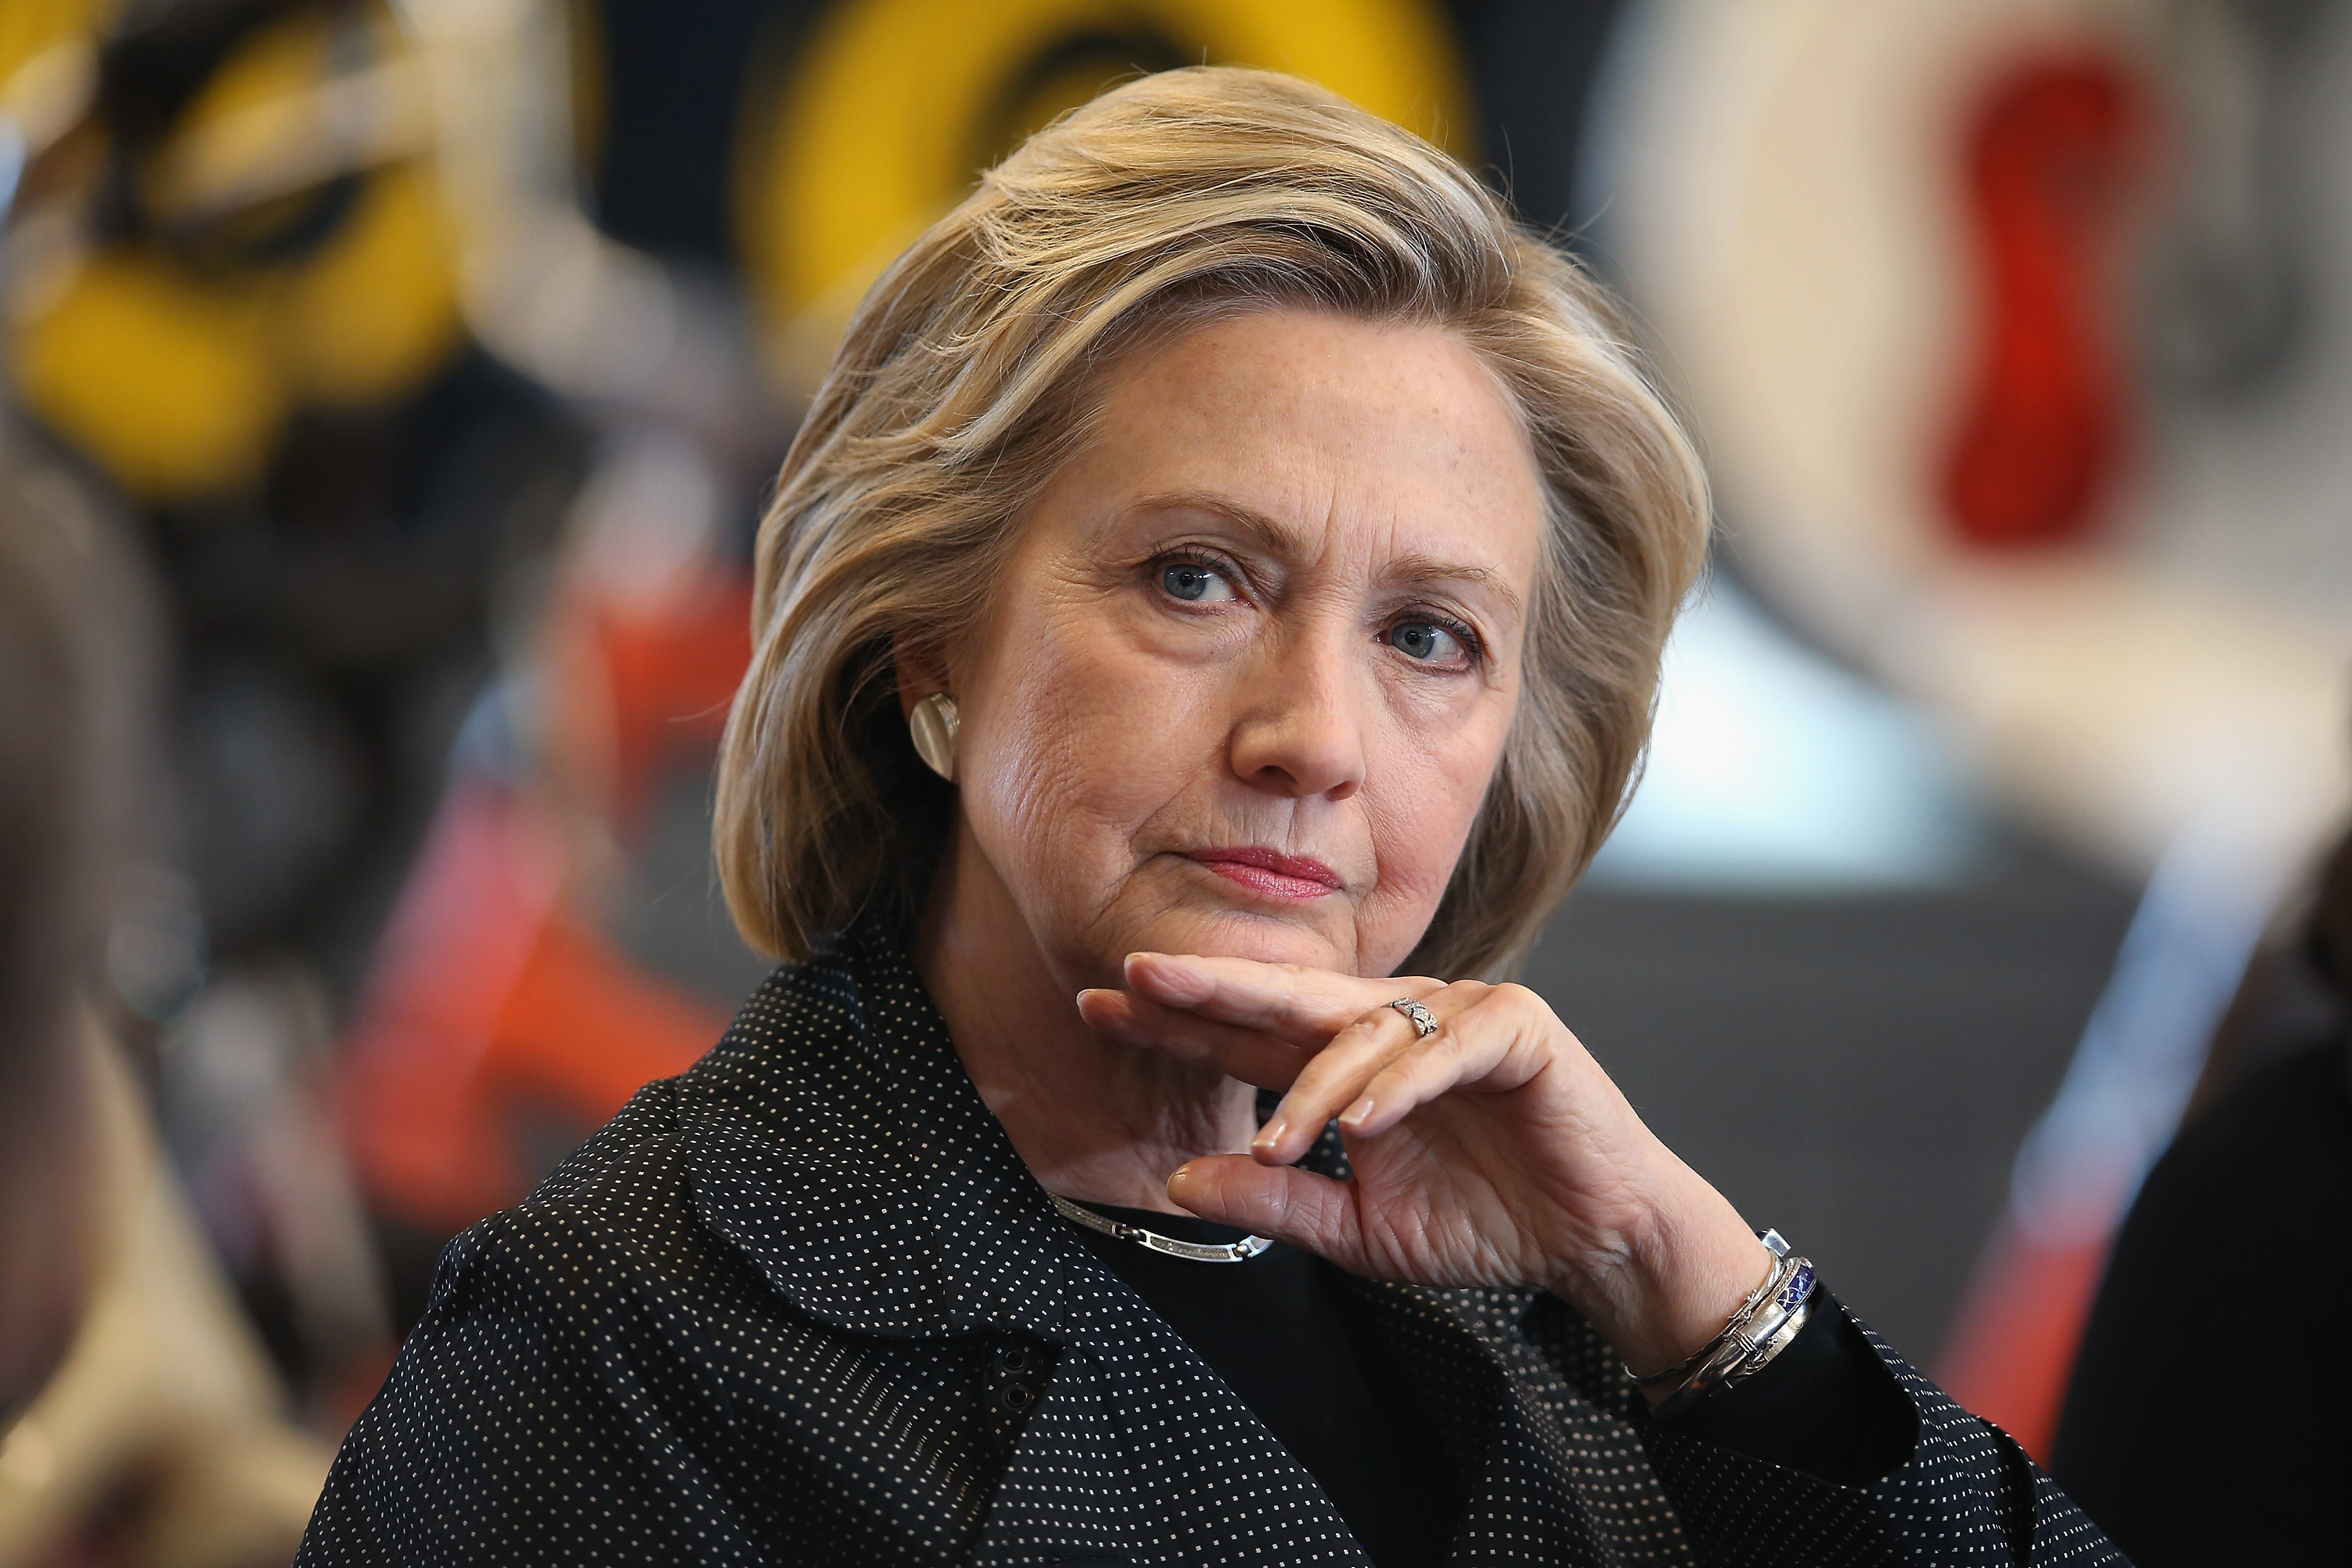 Democratic presidential hopeful and former Secretary of State Hillary Clinton hosts a small business forum with members of the business and lending communities at Bike Tech bicycle shop in Cedar Falls, Iow, on May 19, 2015.